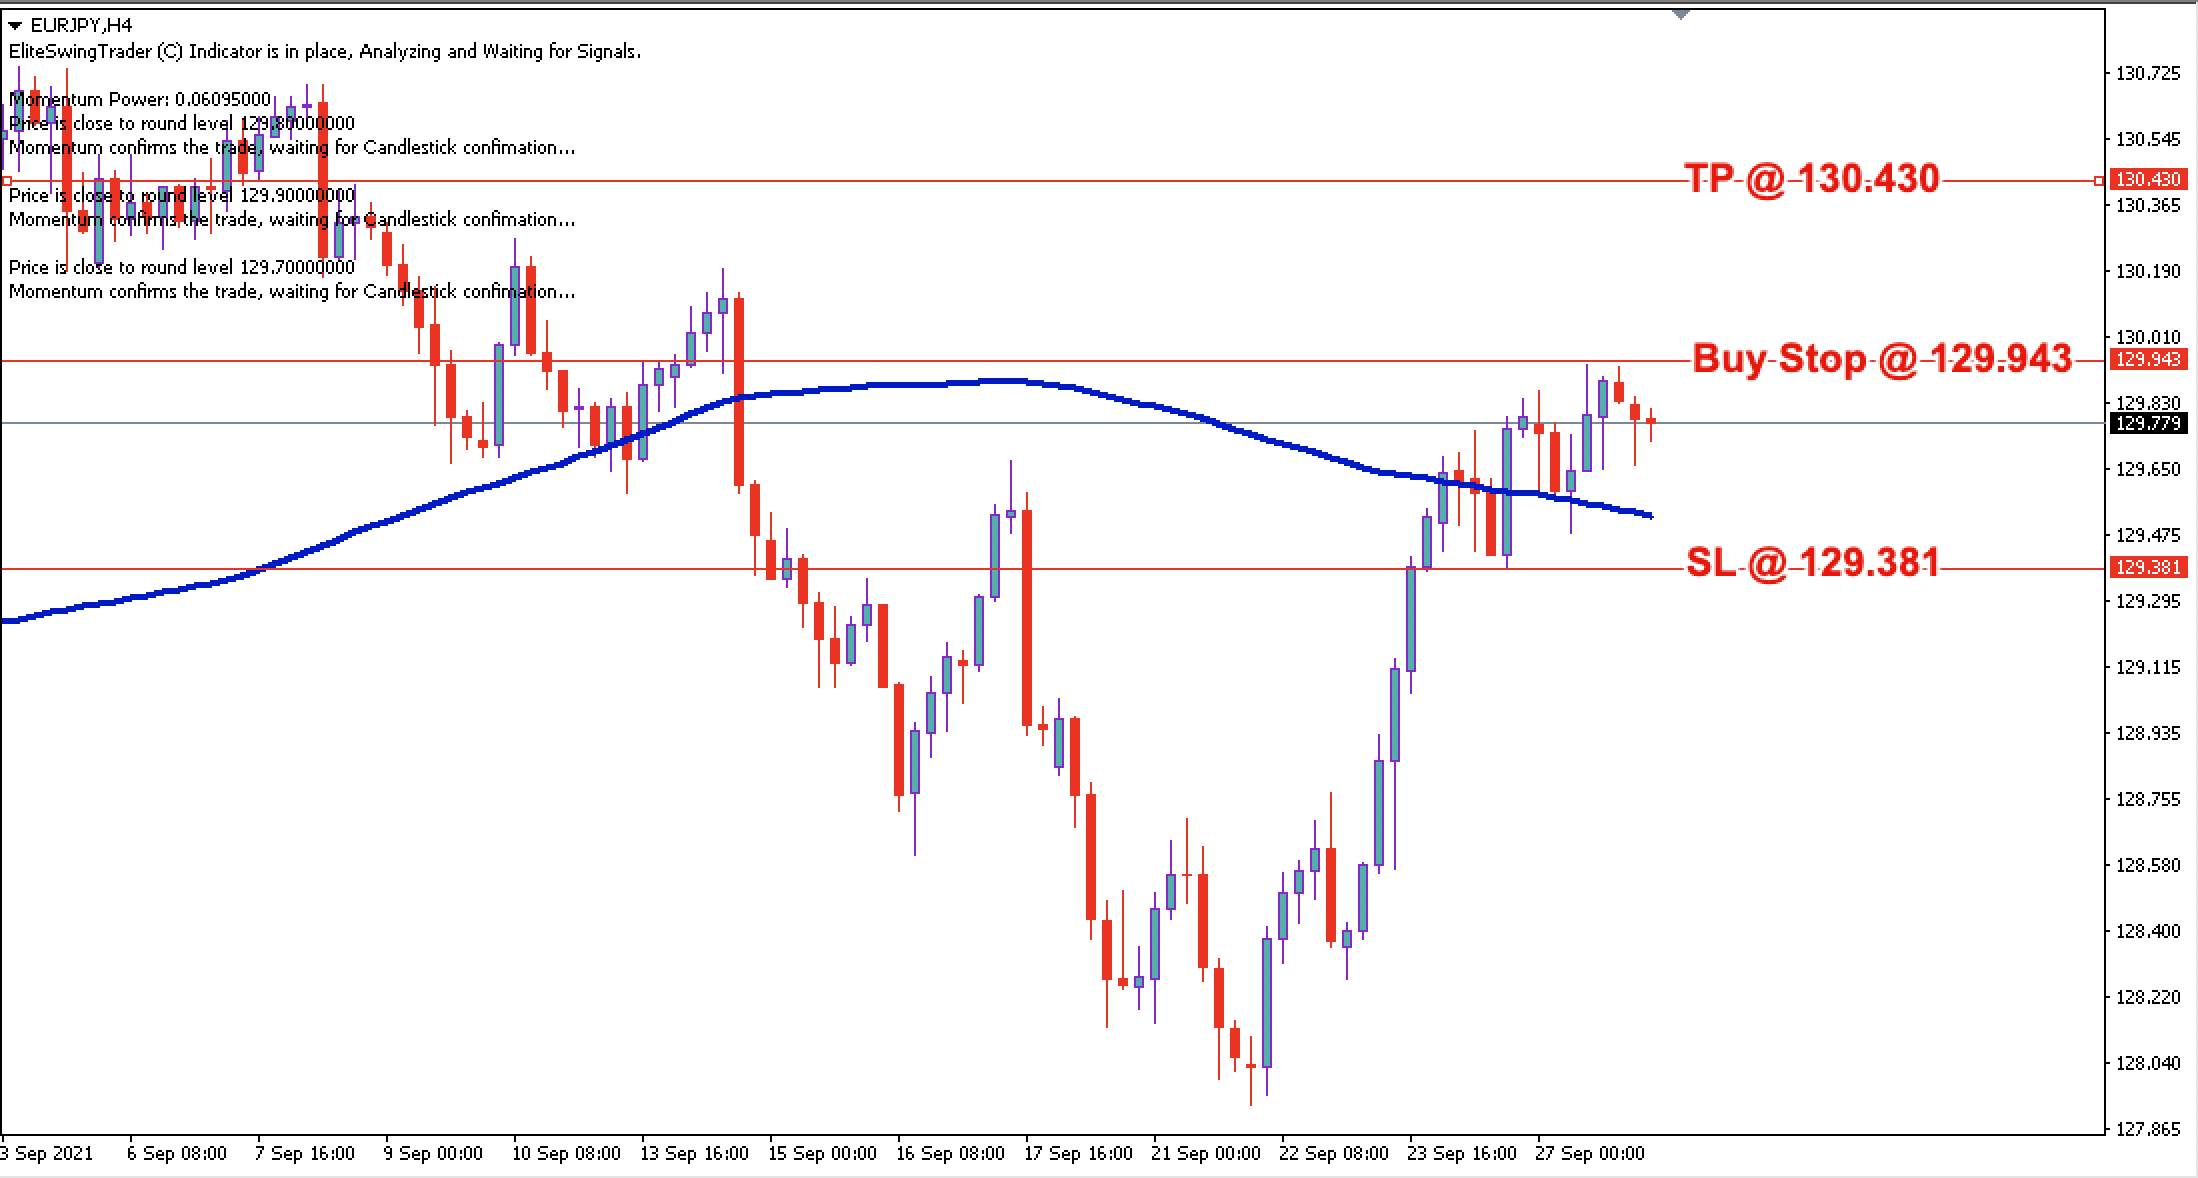 EUR/JPY Daily Price Forecast – 28th Sept 2021